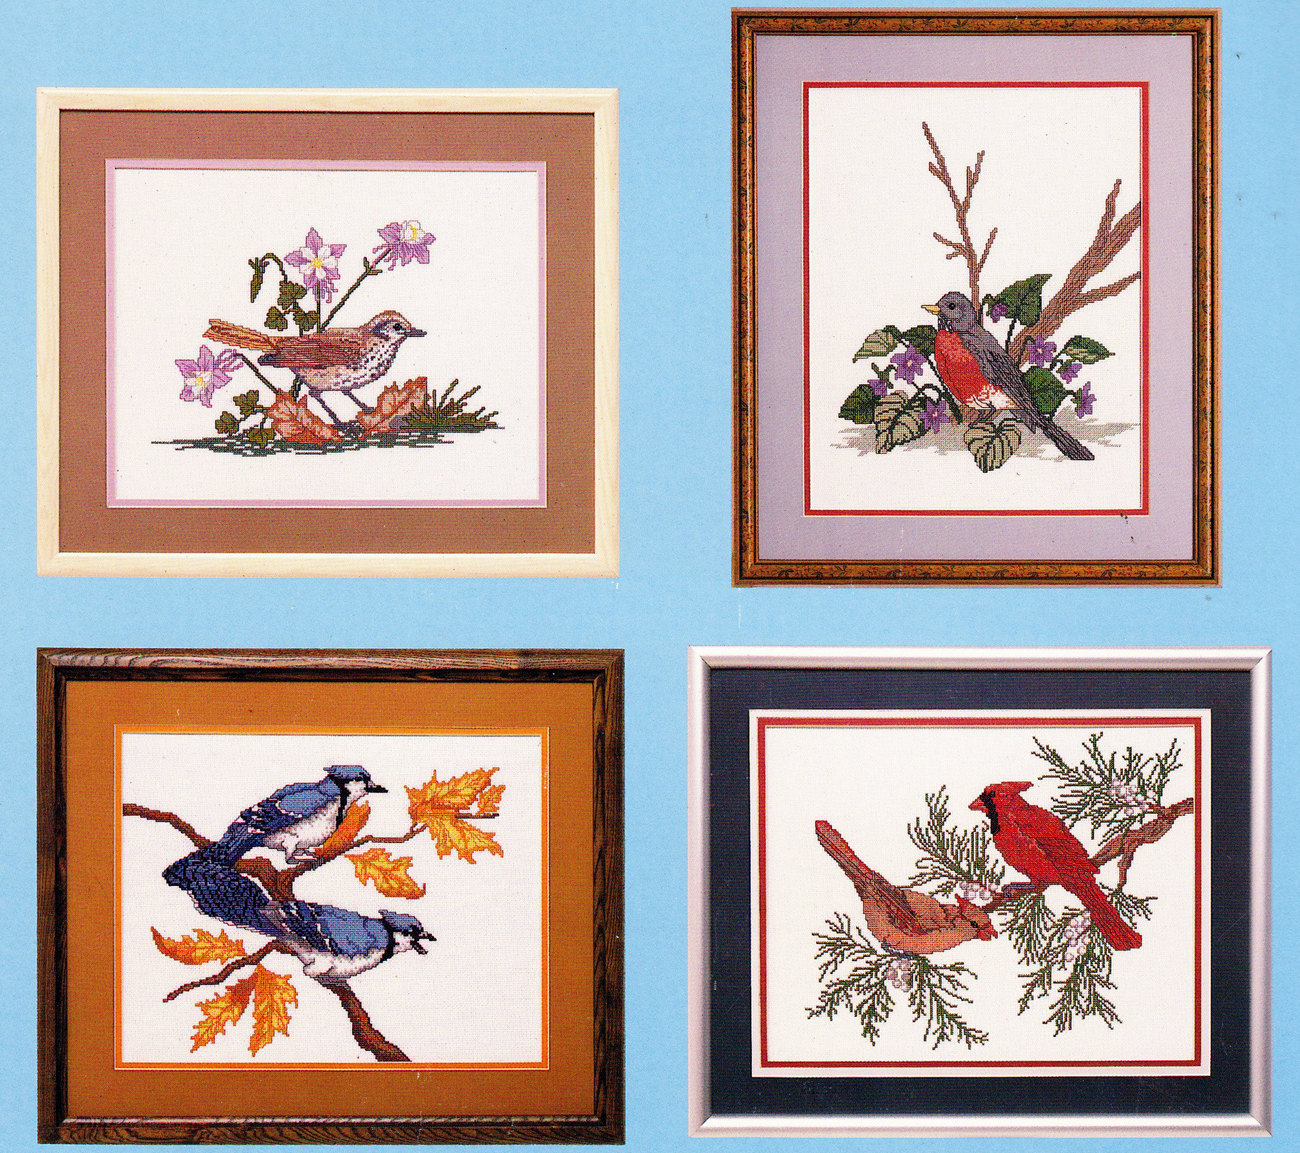 CROSS STITCH NEEDLEPOINT SOMETHING SPECIAL BIRDS COLLECTI - $5.95